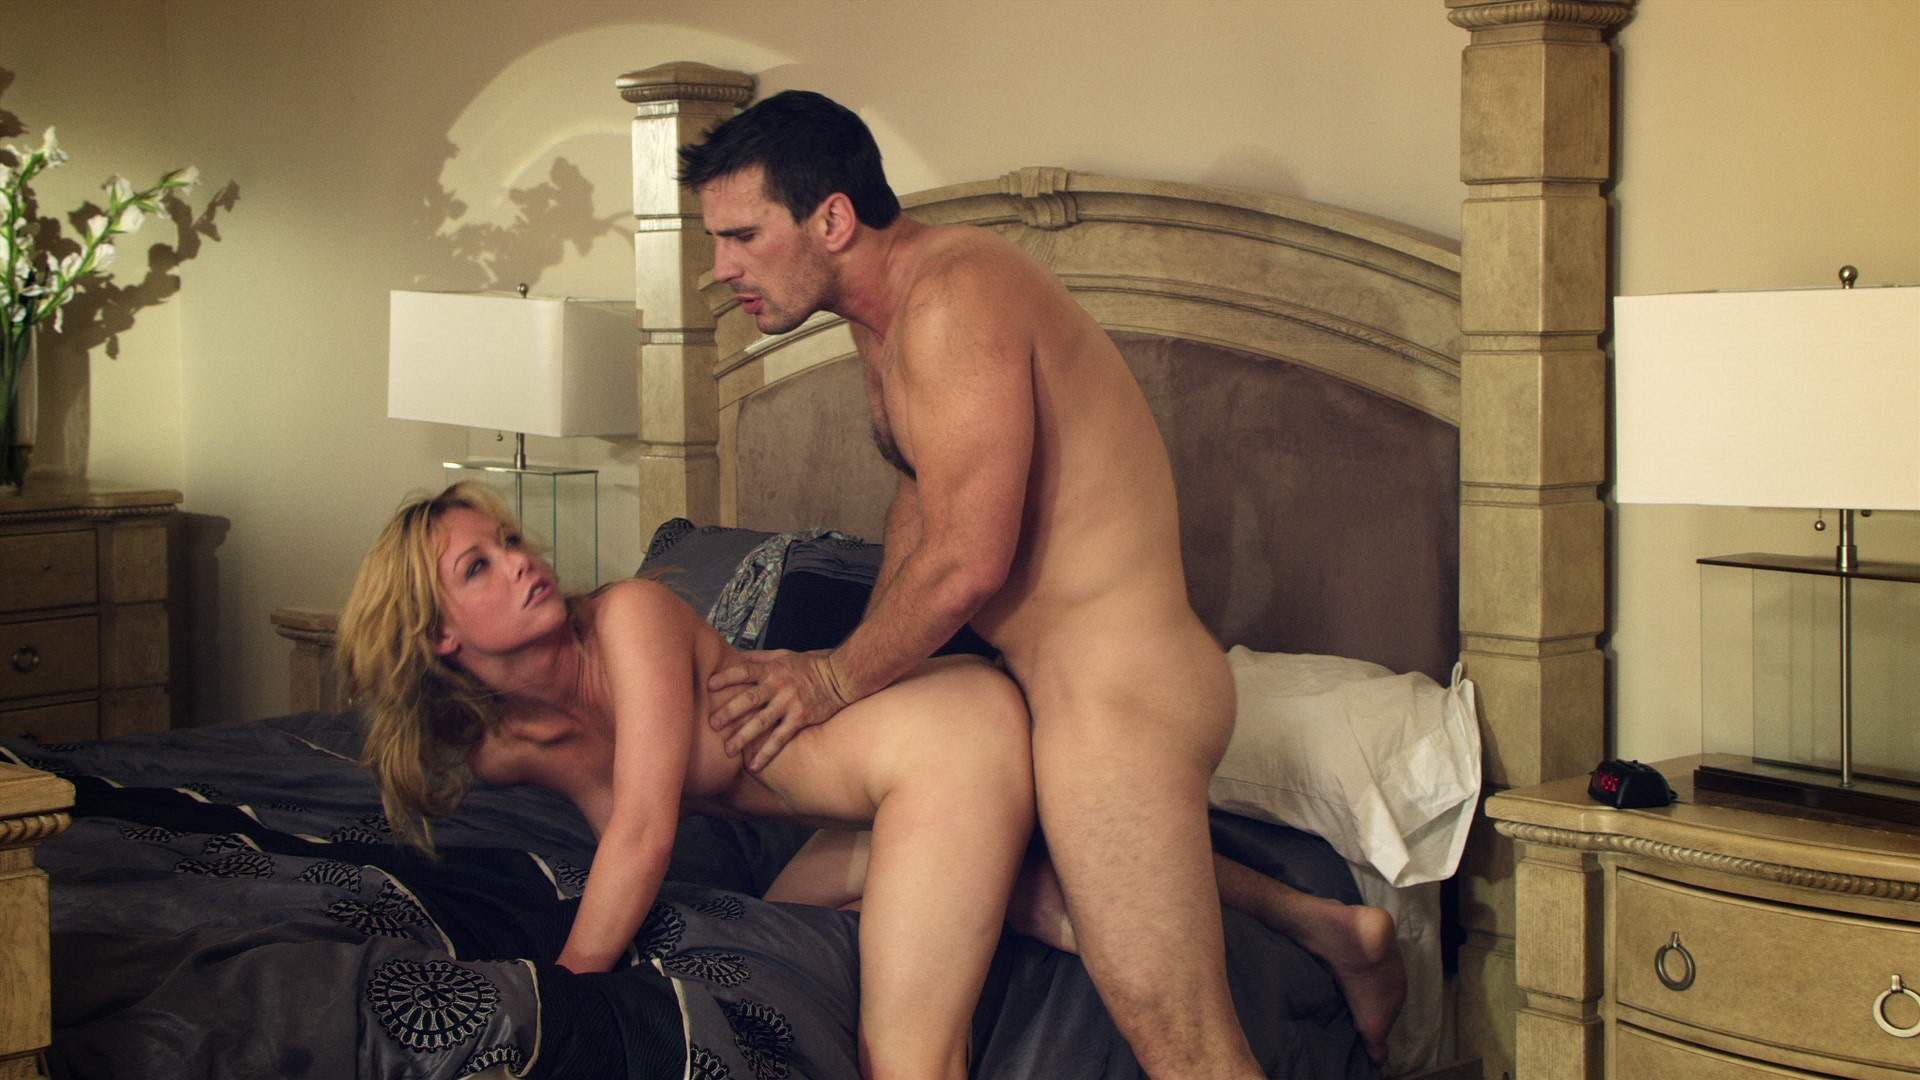 Kayden Kross And Manuel Ferrara Make Love From Old Friends Dvd Blu Ray Combo Digital Playground Adult Empire Unlimited